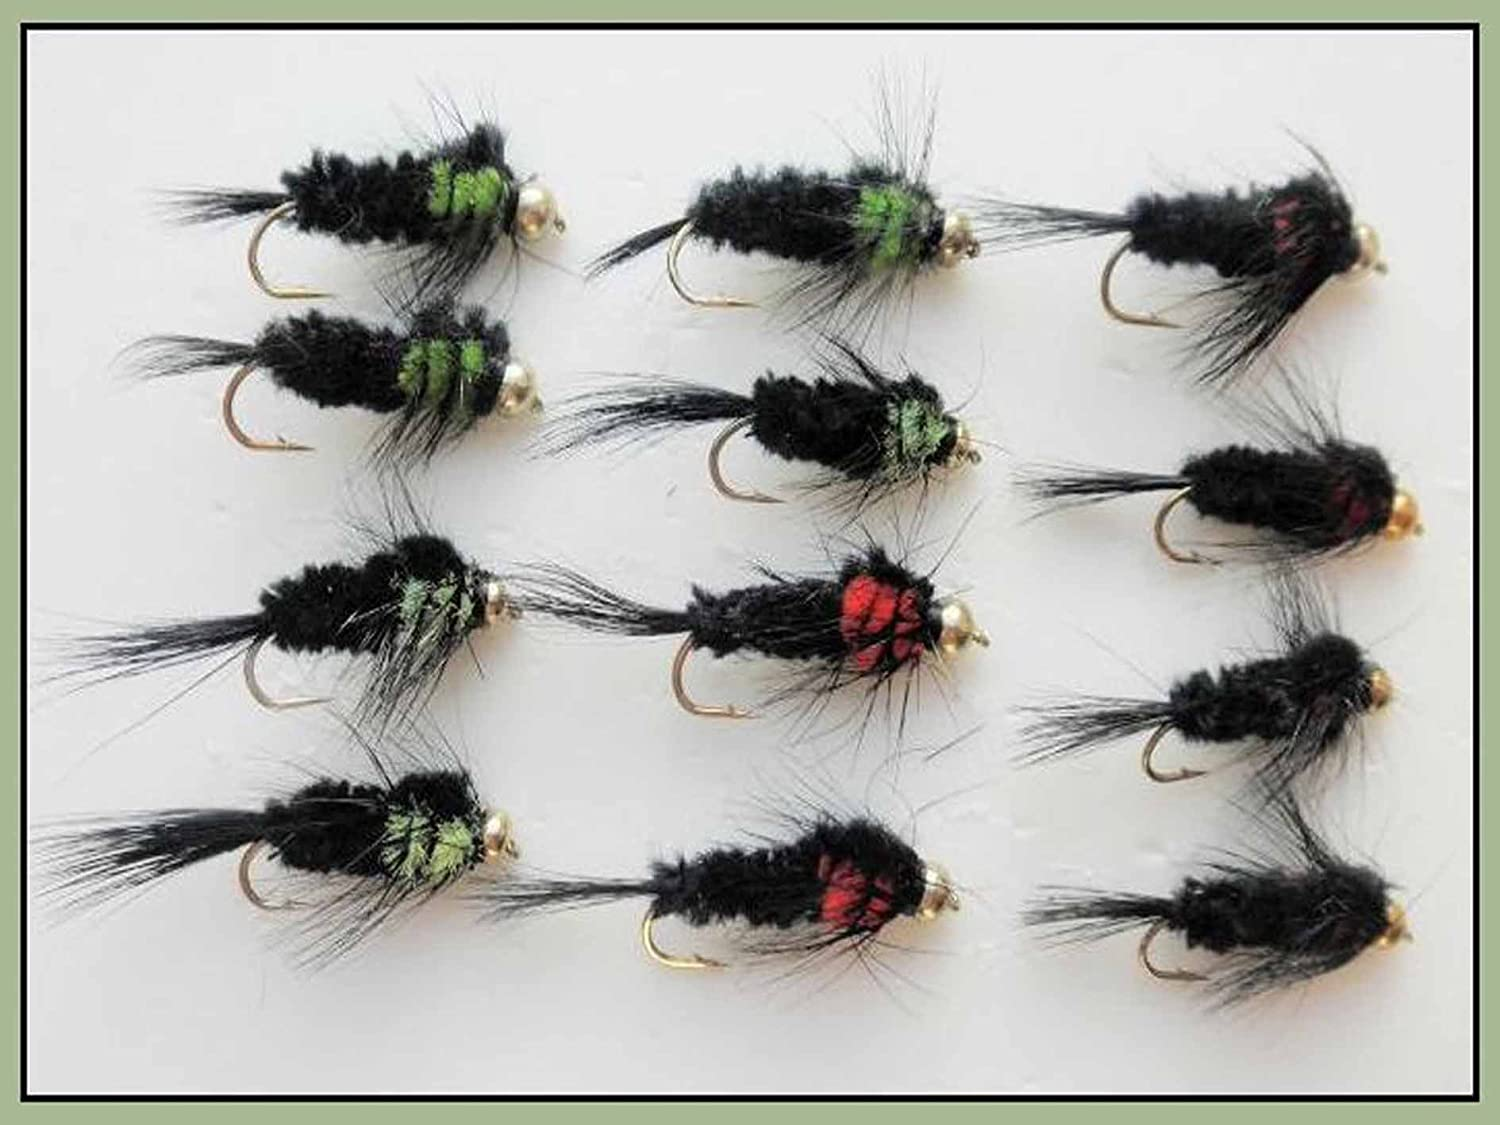 Goldhead Buzzers Mixed 10//12 6 Pack Trout Flies Black and Red Okey Dokey